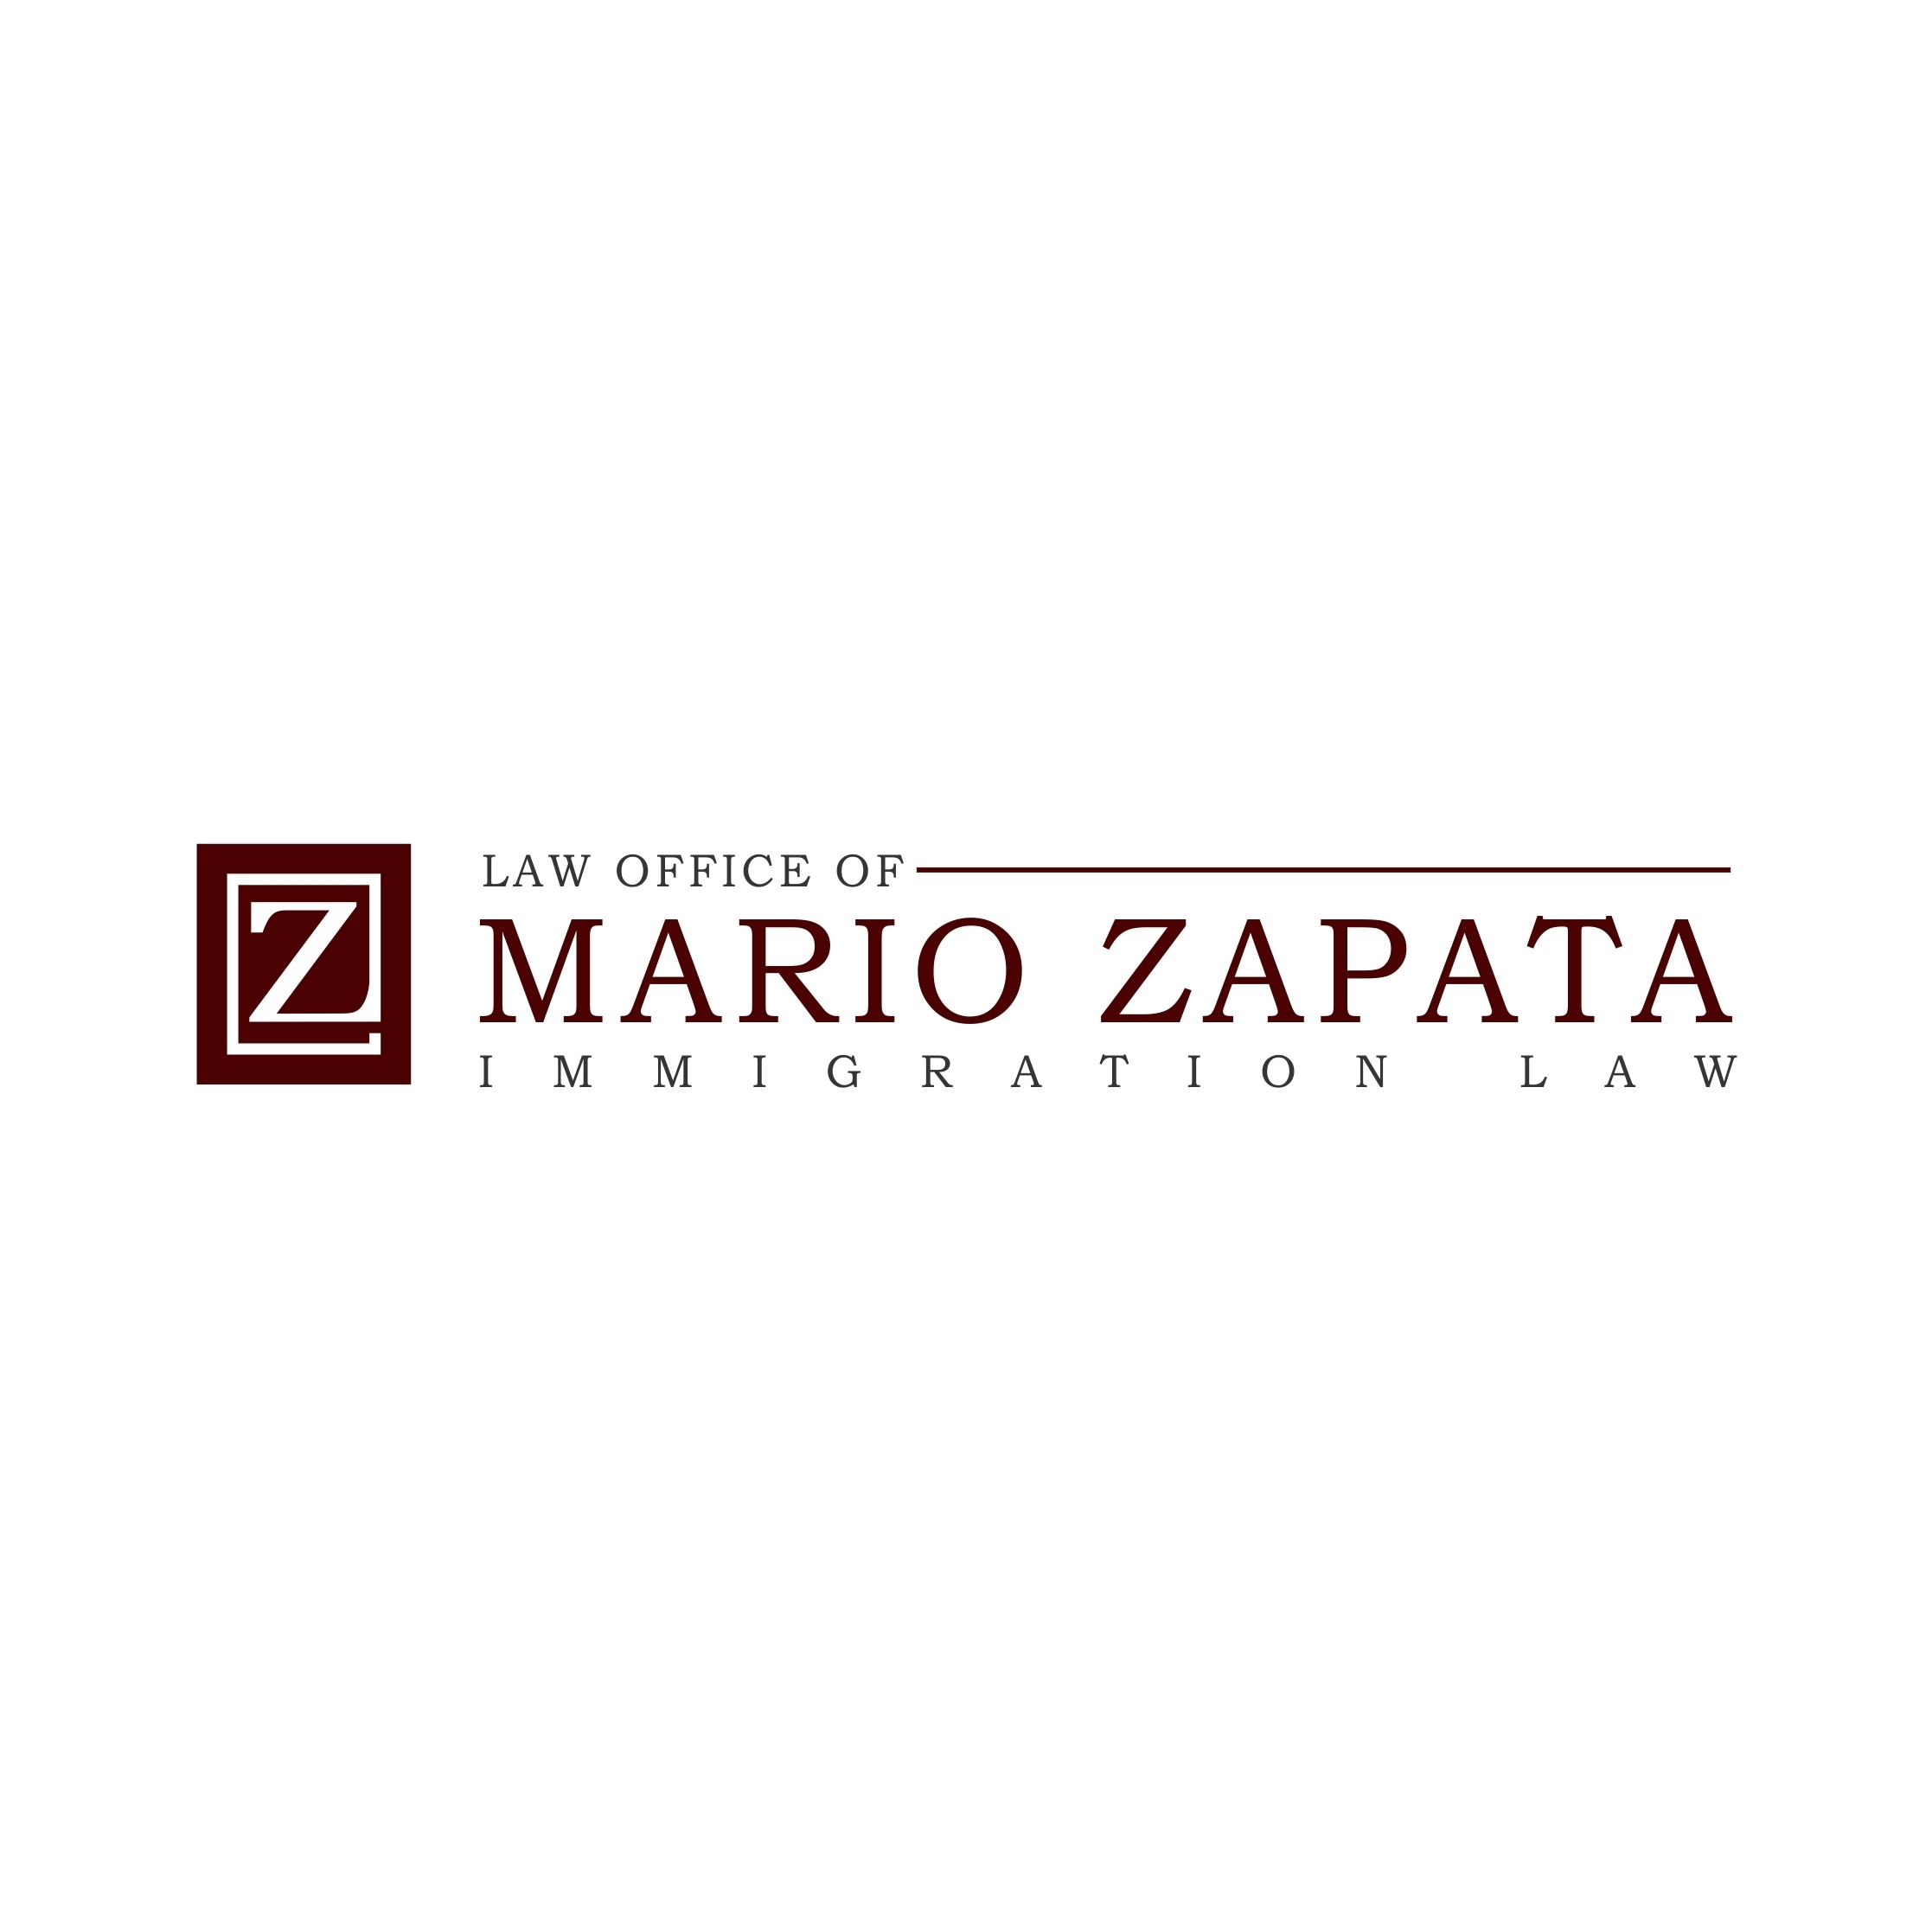 Law Office of Mario Zapata image 7